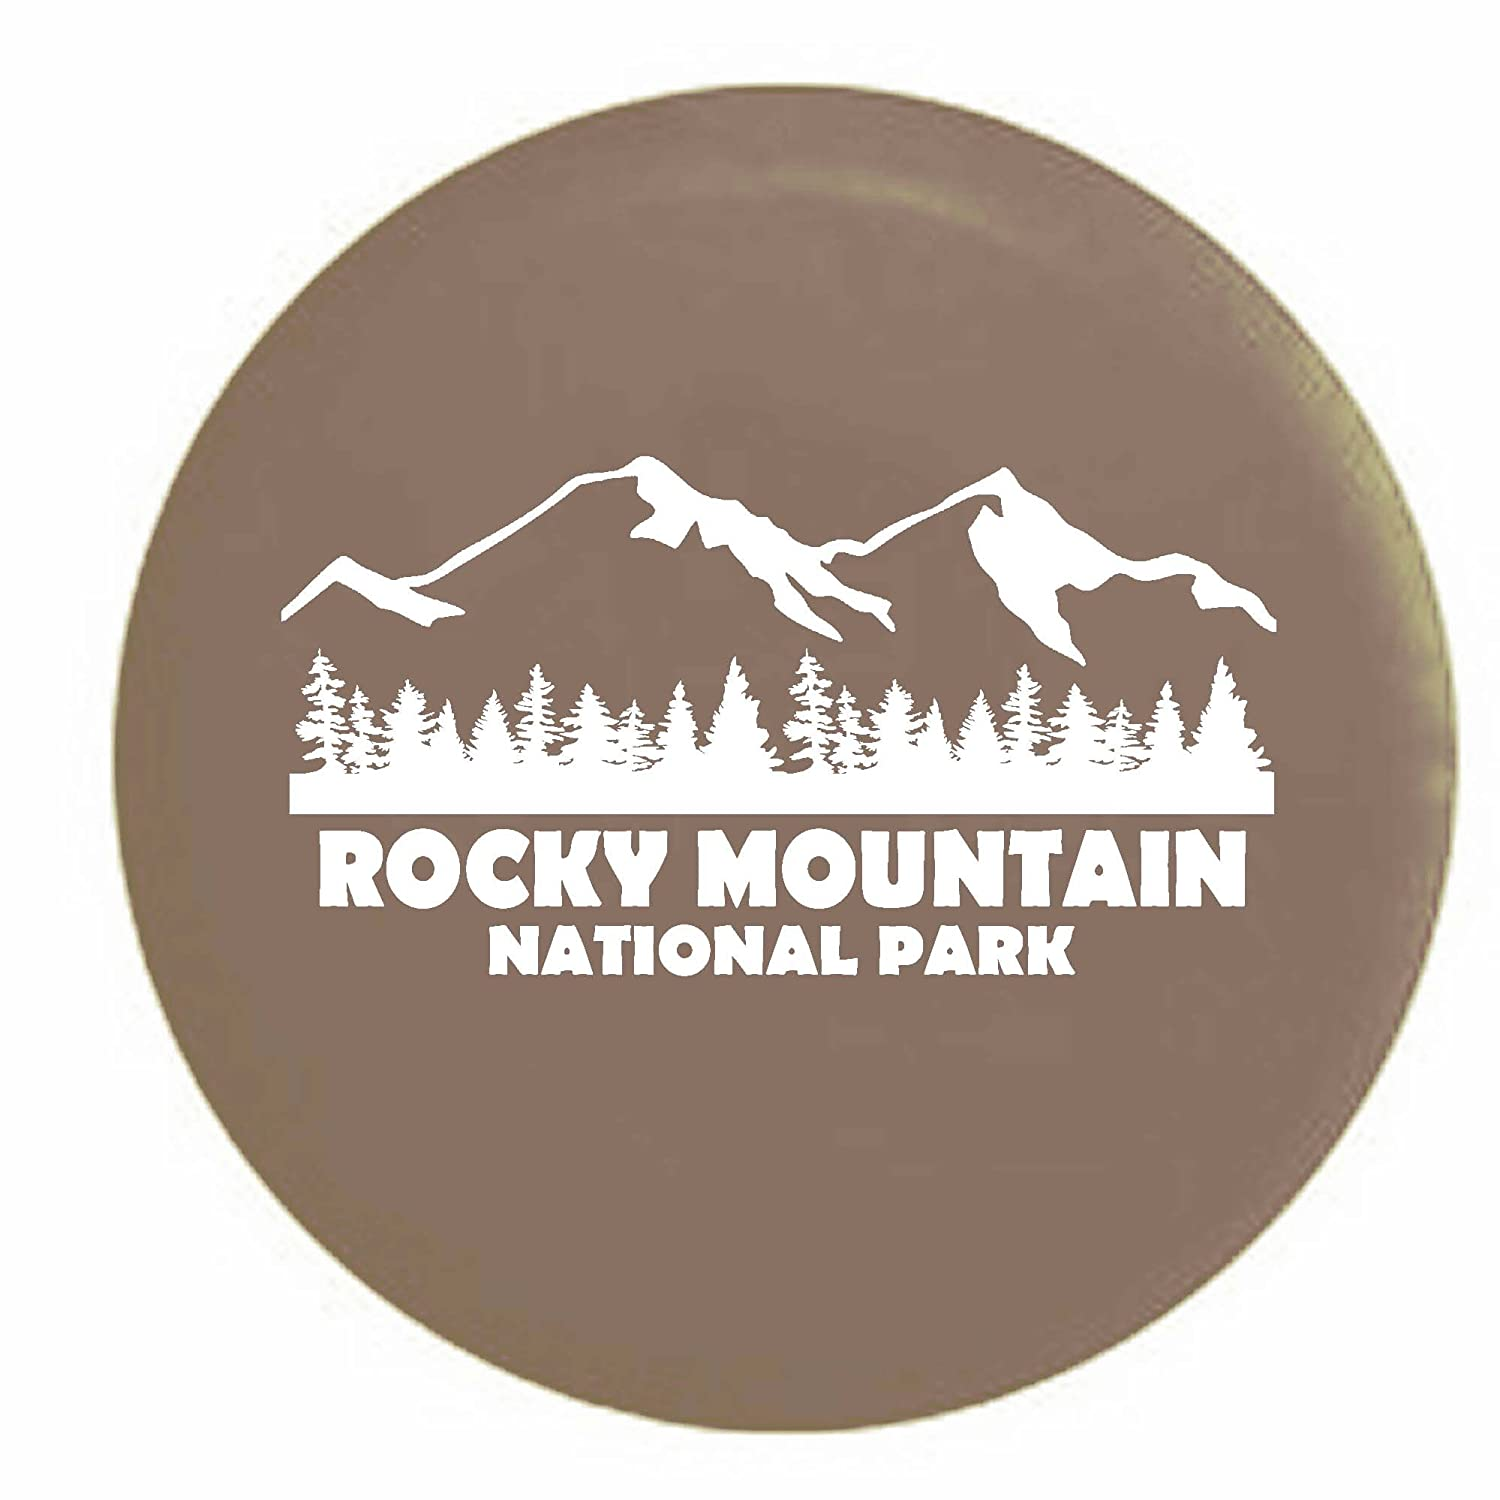 Pike Rocky Mountain National Park Colorado Trailer RV Spare Tire Cover OEM Vinyl Black 30 in Pike Outdoors